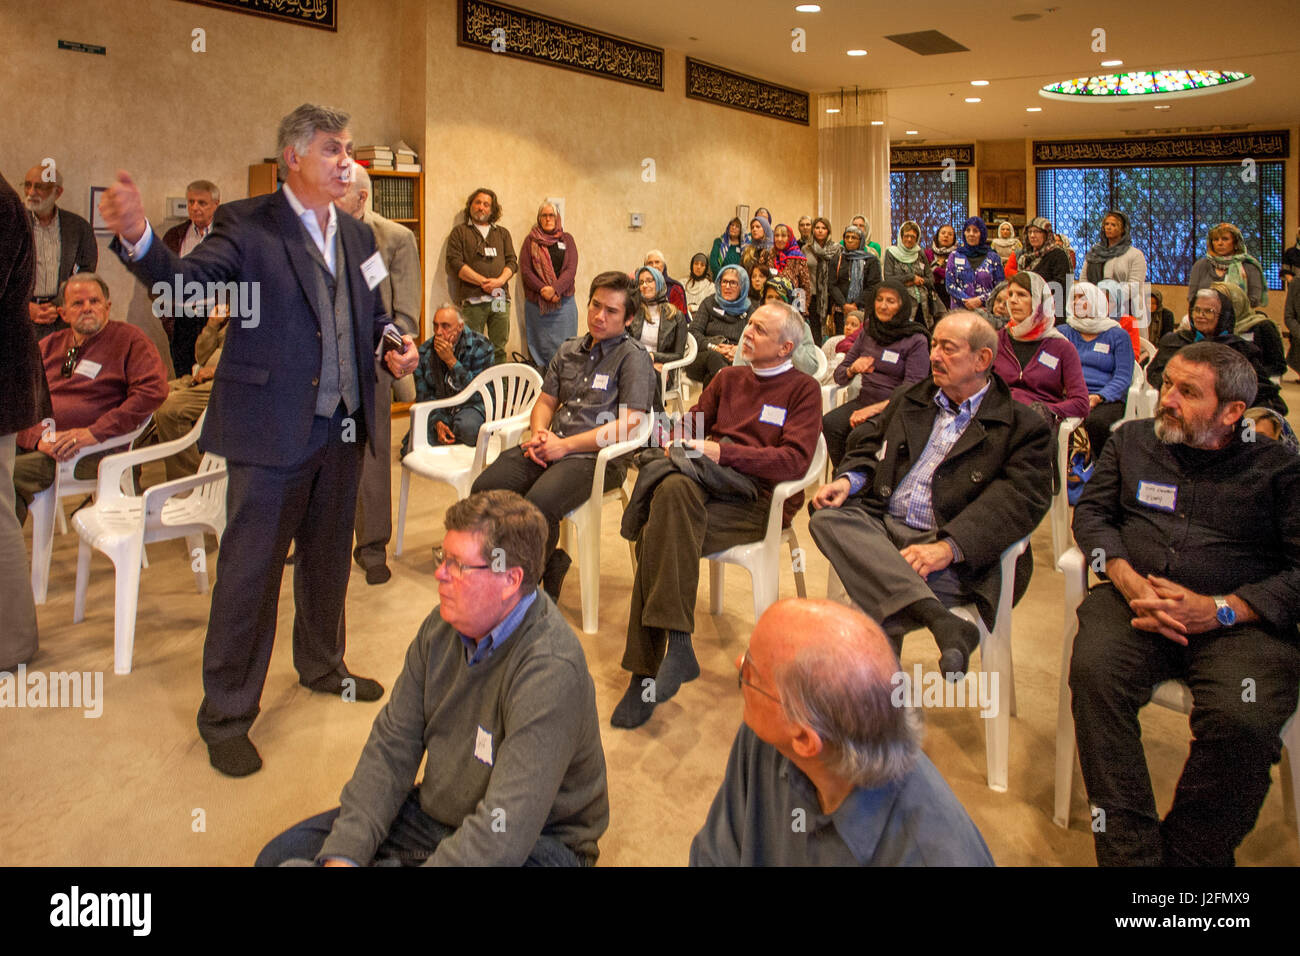 A guide lectures on Islam to non-Muslim local community visitors to a mosque on visitors day in Mission Viejo, CA. - Stock Image